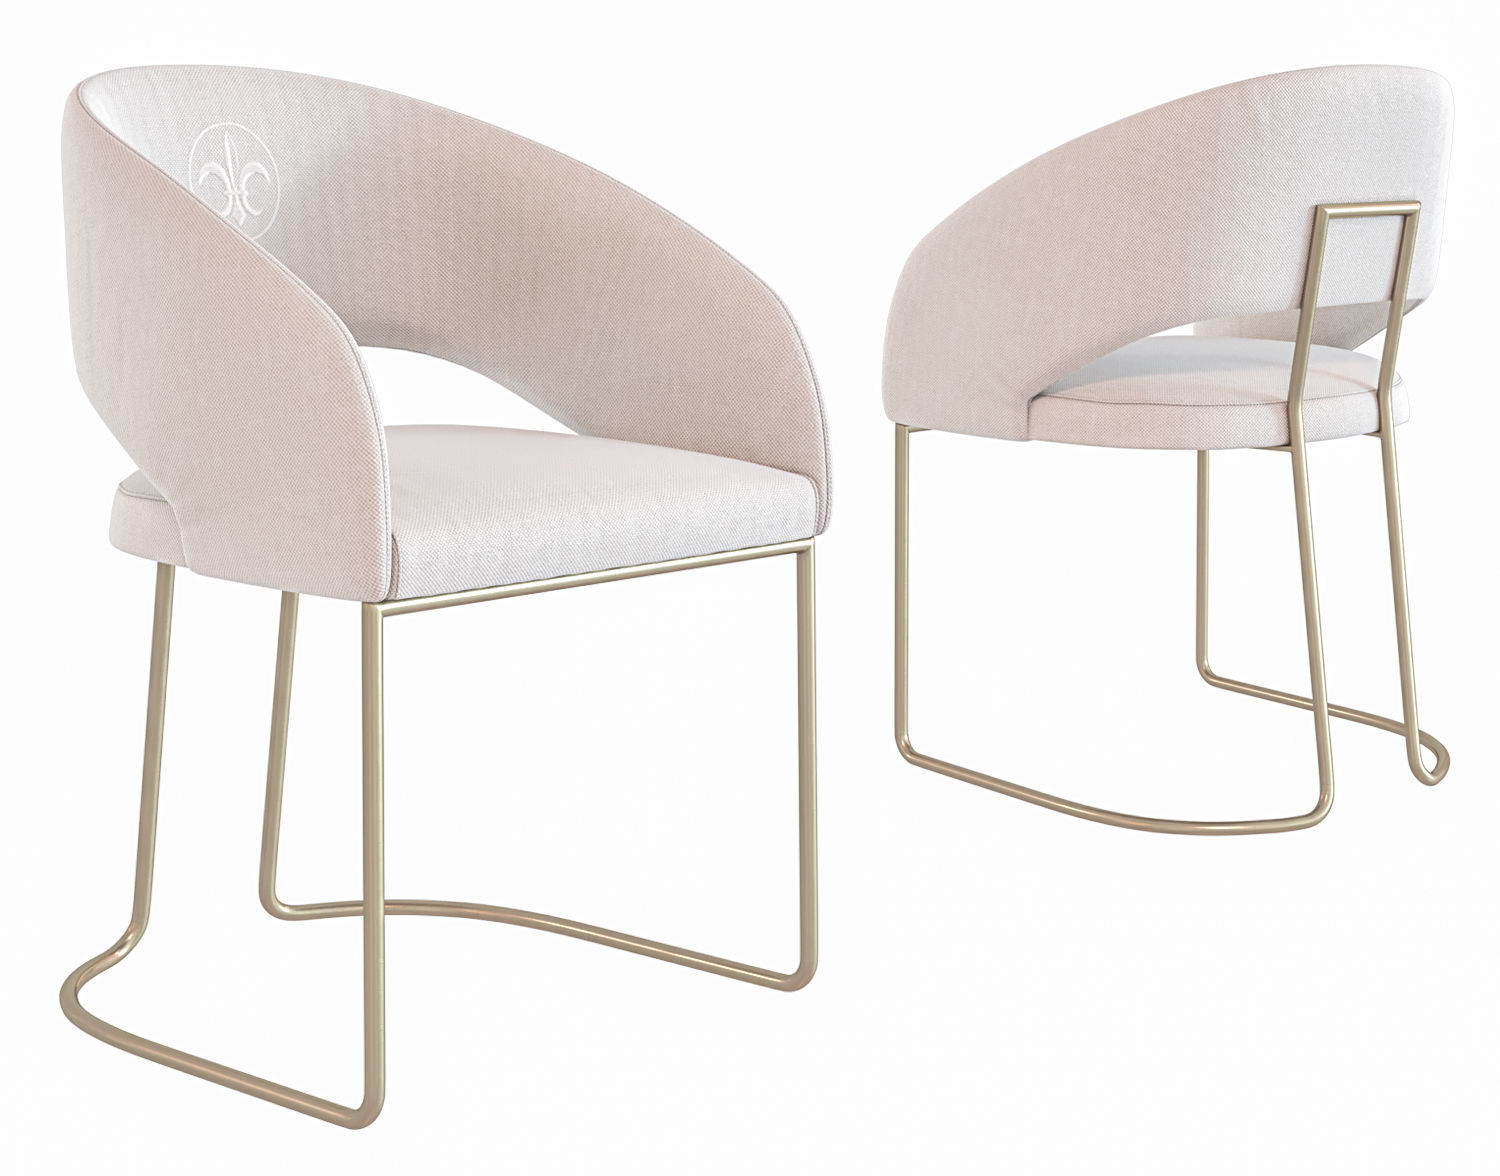 Muebles Canella KLASS Chair